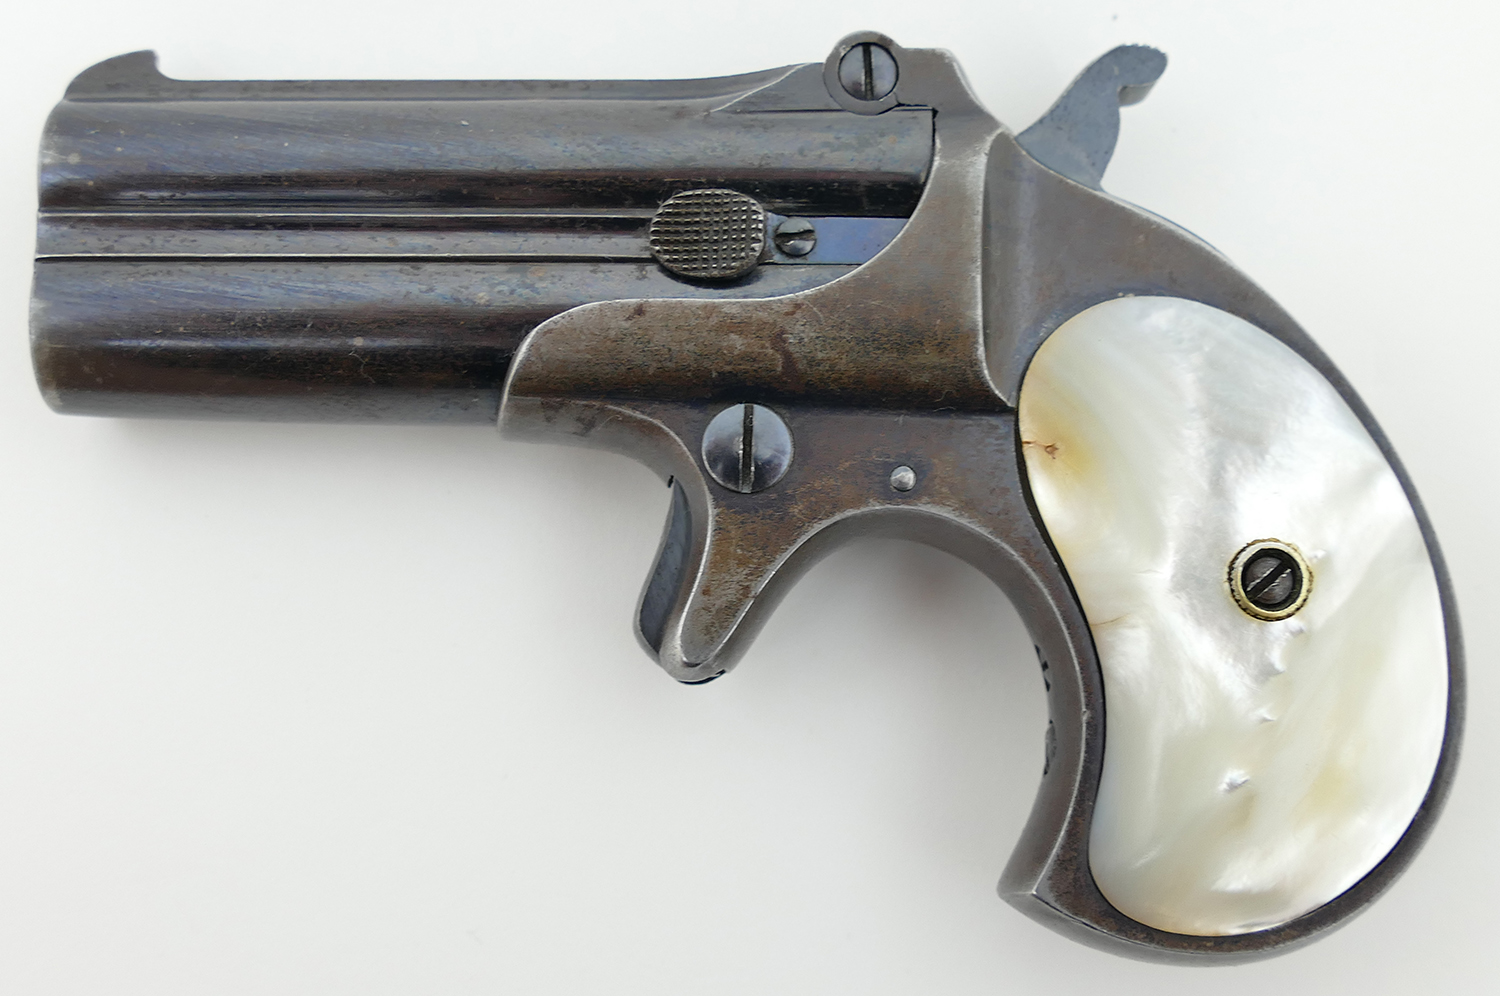 Remington Double Derringer  41 Short Revolver, 1904-1910 Mfg Date with  Pearl Grips (Used)